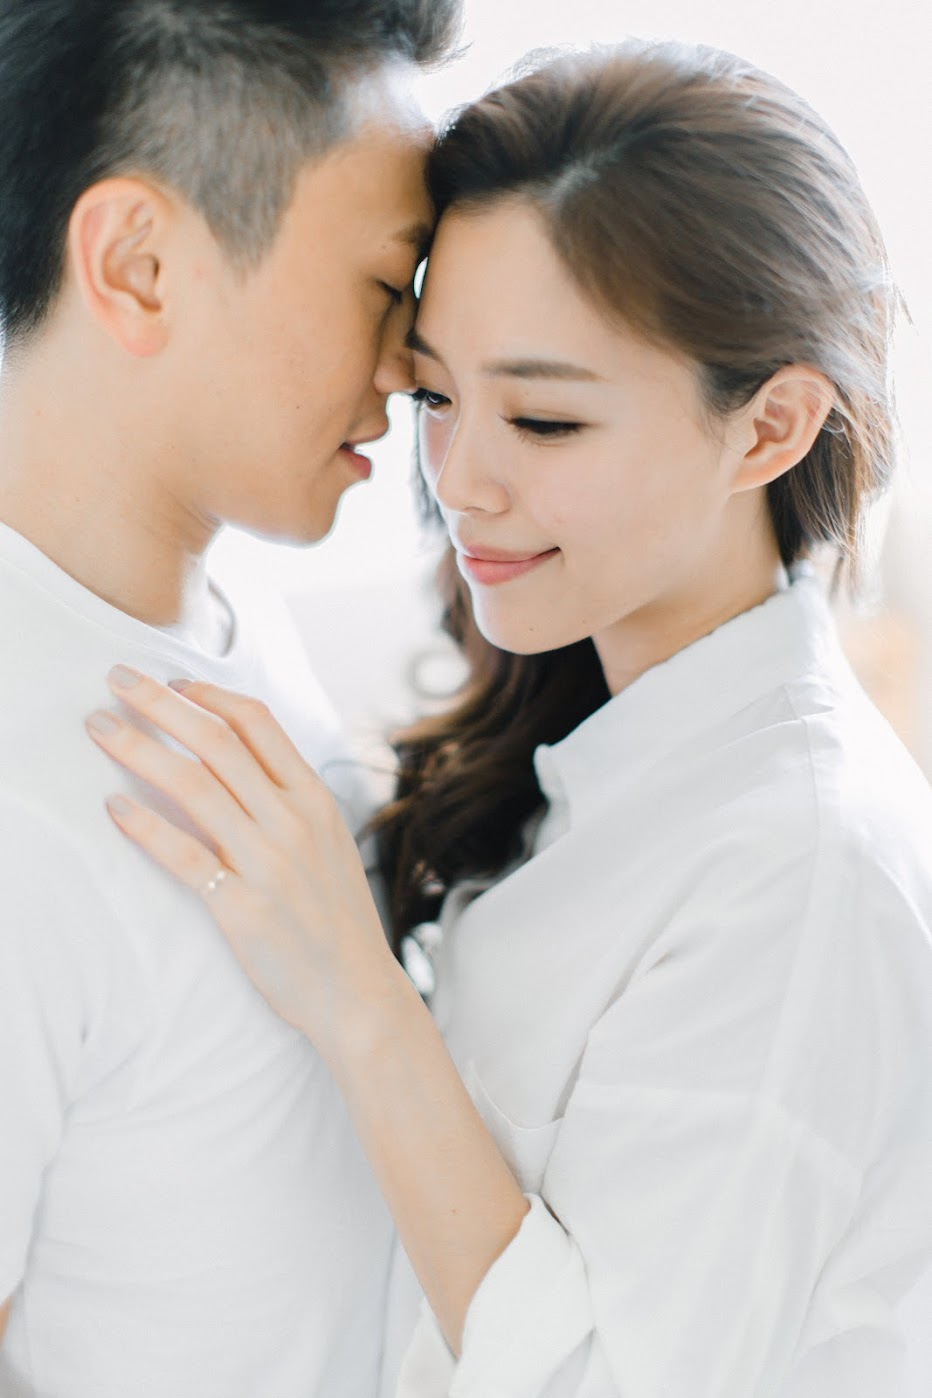 Amazing grace Studio,自助婚紗,美式婚紗,台中婚紗,engagement,fine art,wedding photography